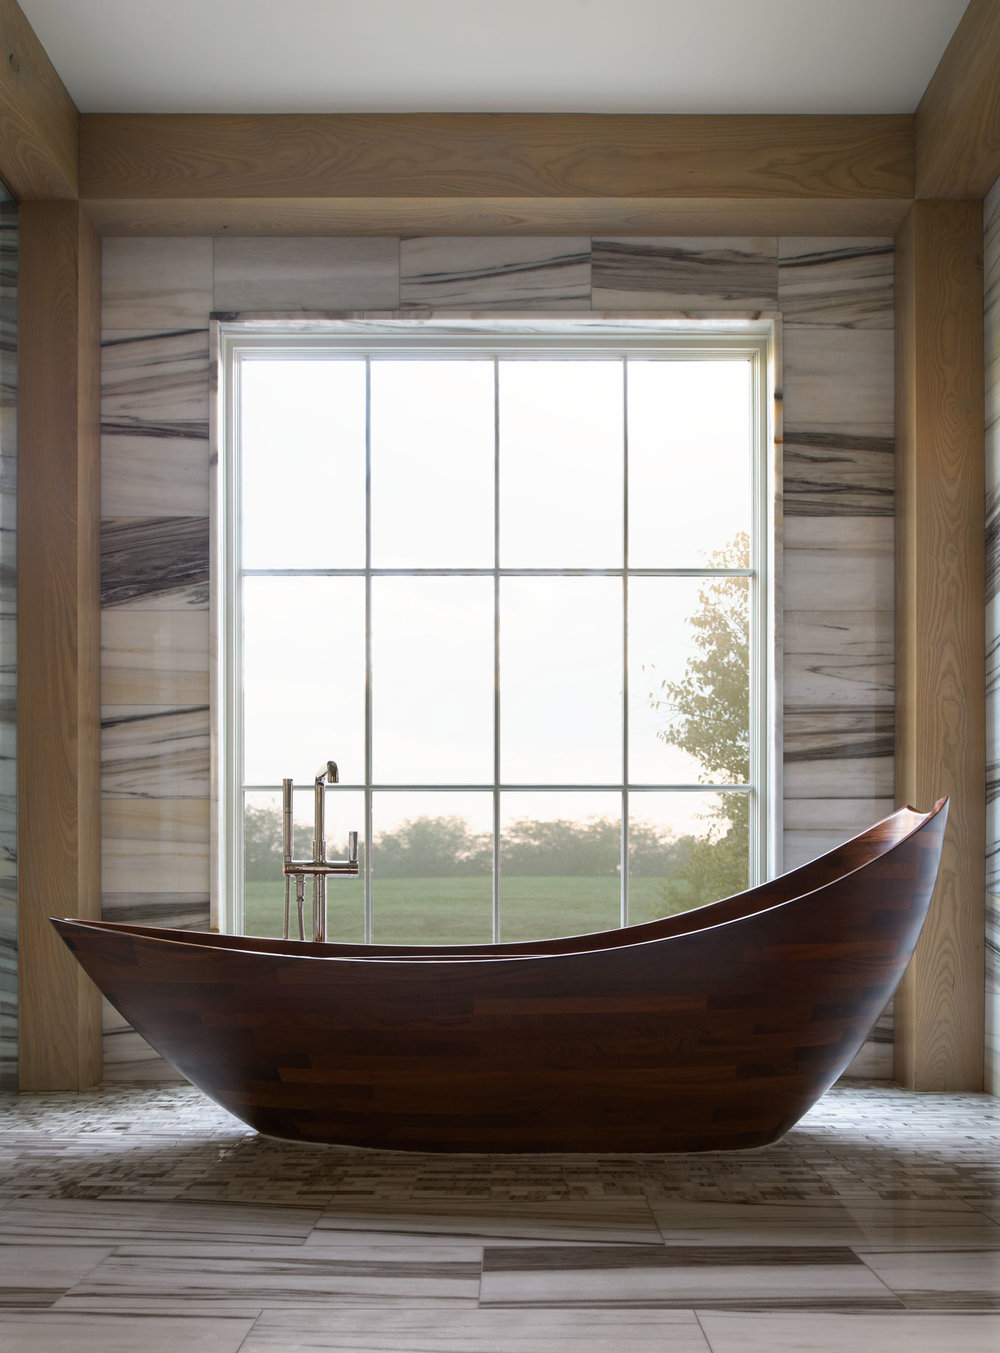 architecture-interiors-bath.jpg